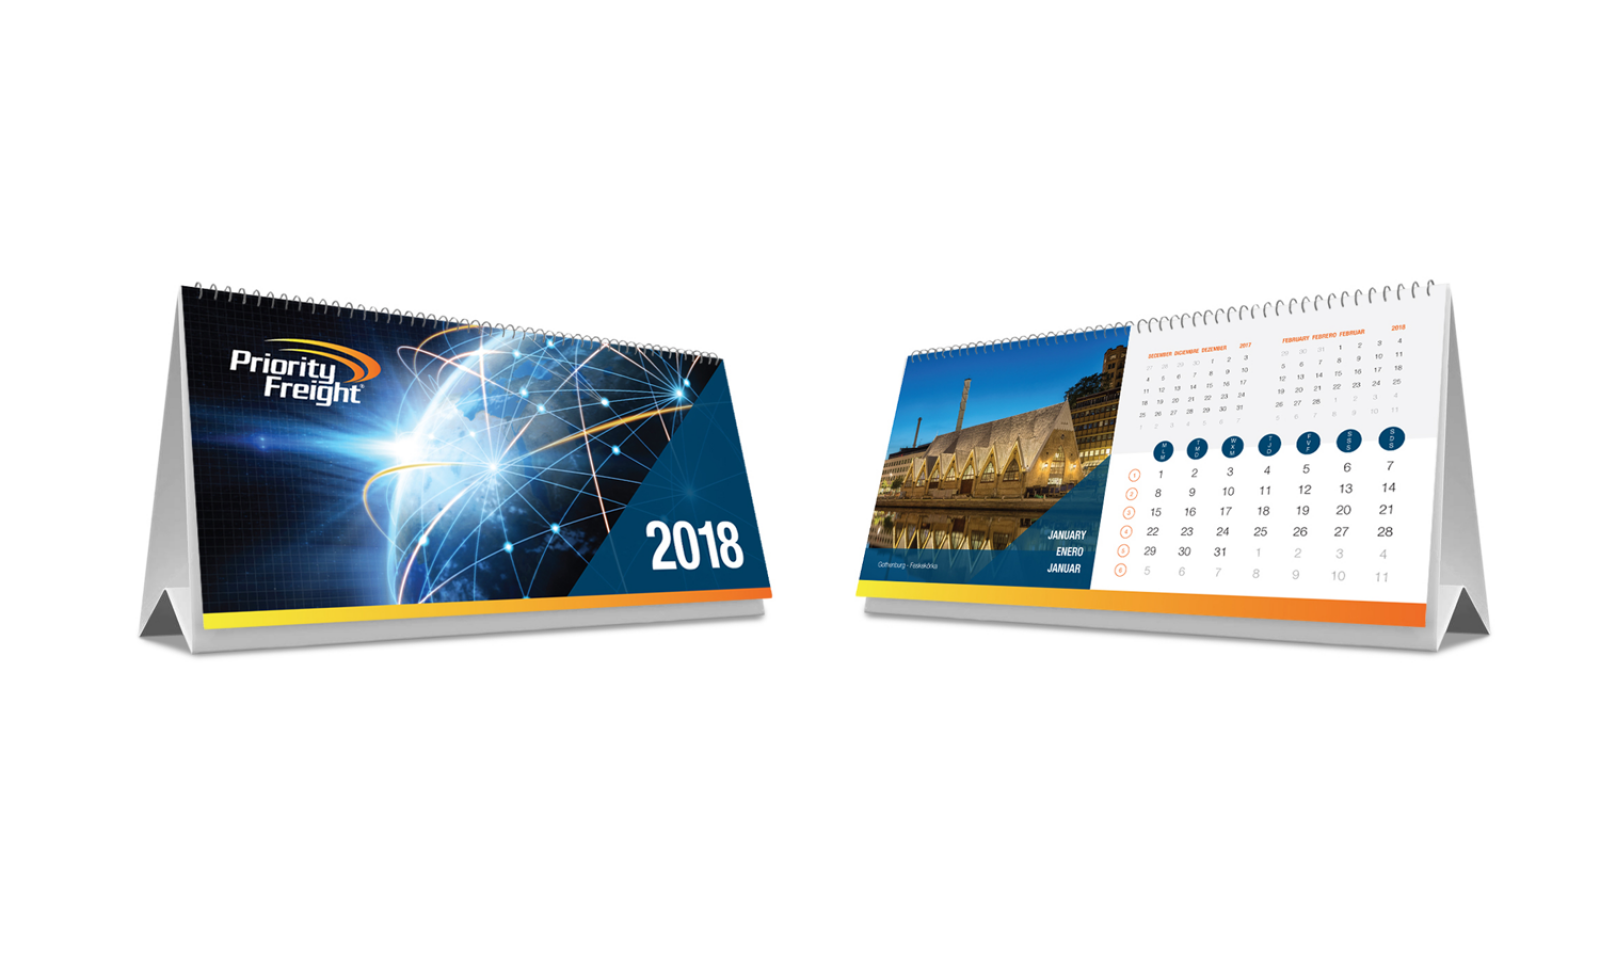 Priority-freight-2018-calender-corporate-identity-agency-graphic-design-canterbury.png